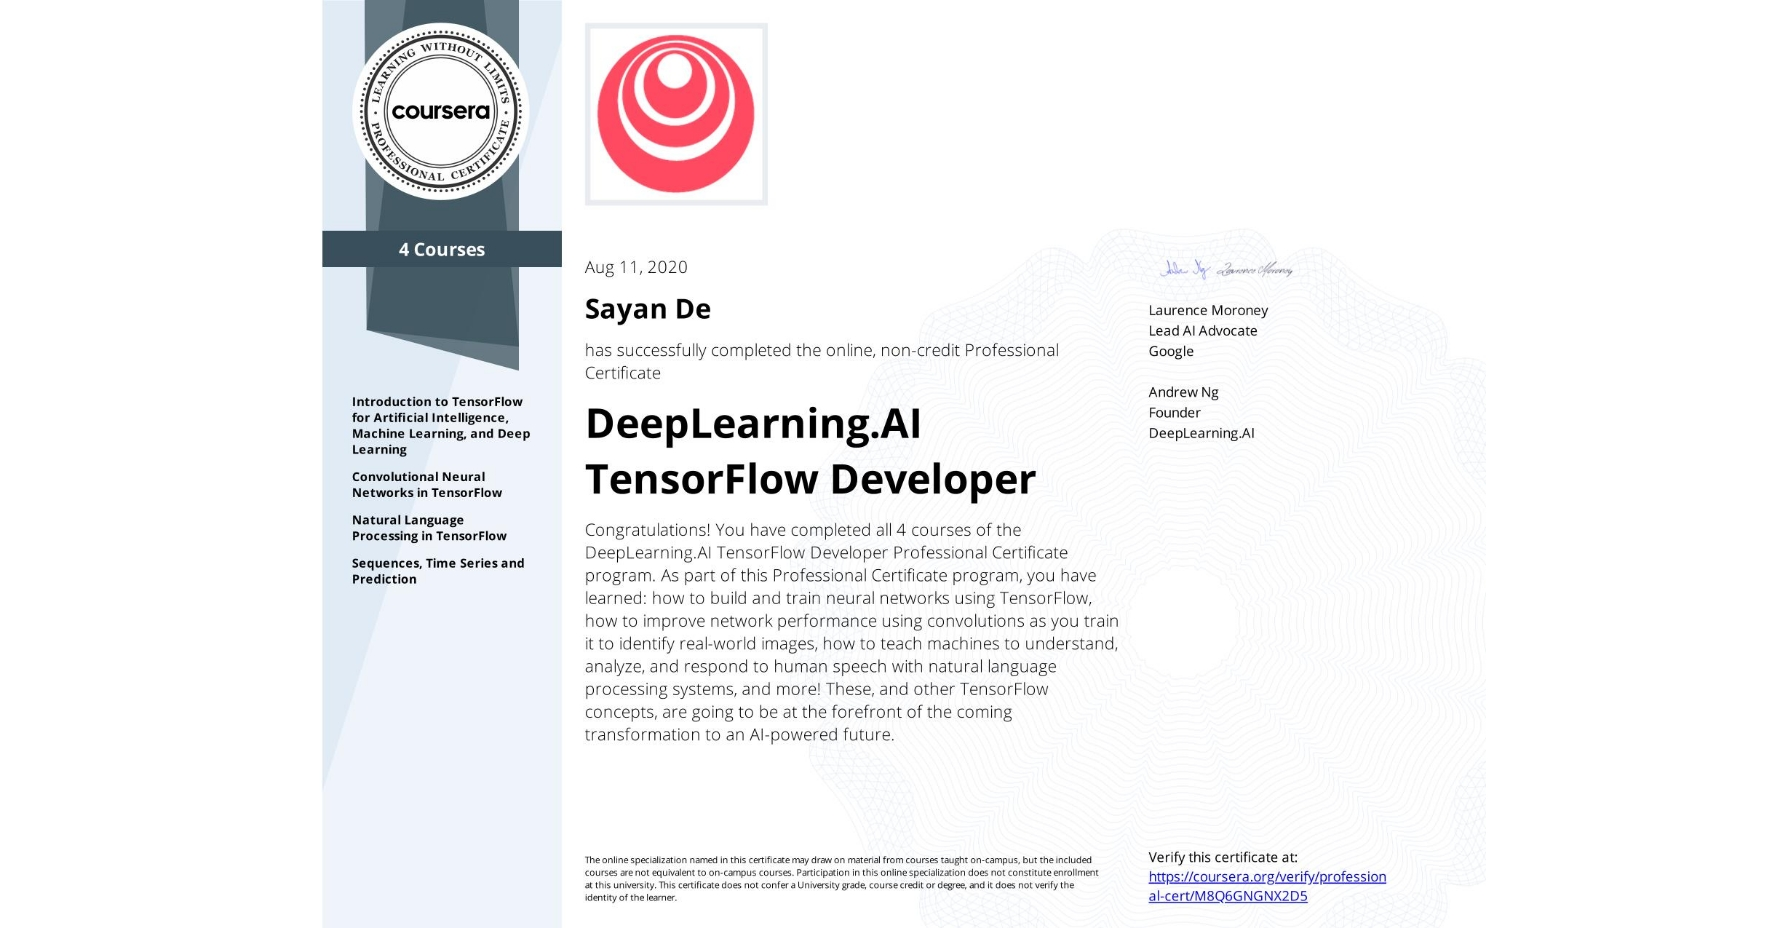 View certificate for Sayan De, DeepLearning.AI TensorFlow Developer, offered through Coursera. Congratulations! You have completed all 4 courses of the DeepLearning.AI TensorFlow Developer Professional Certificate program.   As part of this Professional Certificate program, you have learned: how to build and train neural networks using TensorFlow, how to improve network performance using convolutions as you train it to identify real-world images, how to teach machines to understand, analyze, and respond to human speech with natural language processing systems, and more!  These, and other TensorFlow concepts, are going to be at the forefront of the coming transformation to an AI-powered future.